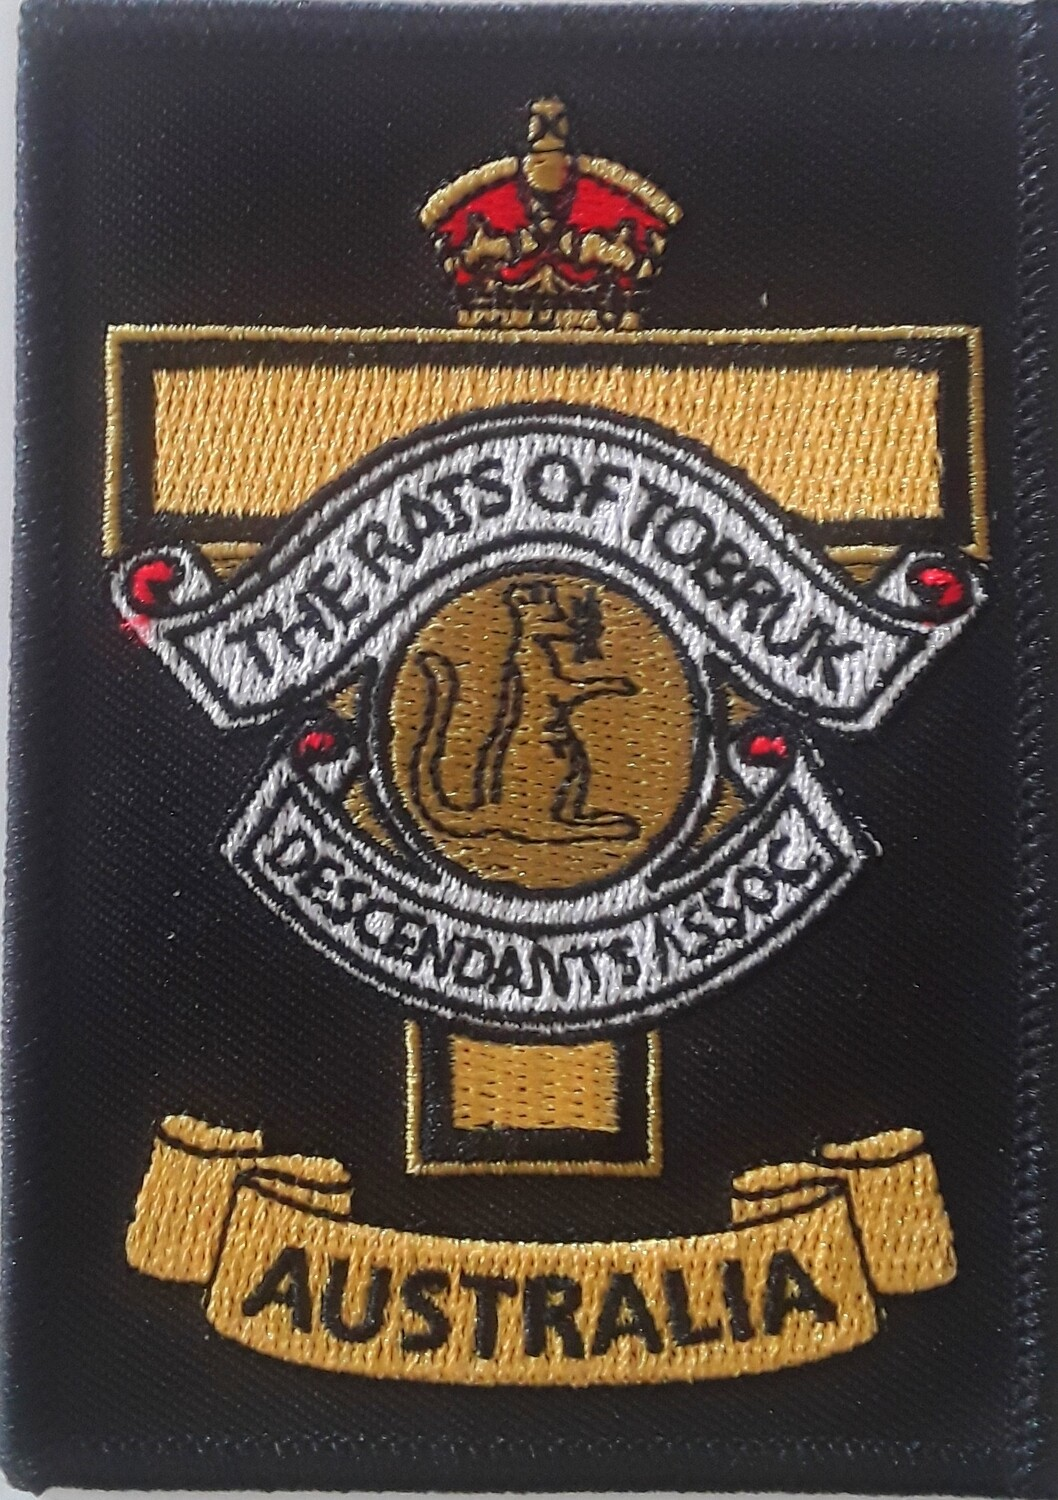 DOTROTA EMBROIDERED POCKET PATCH